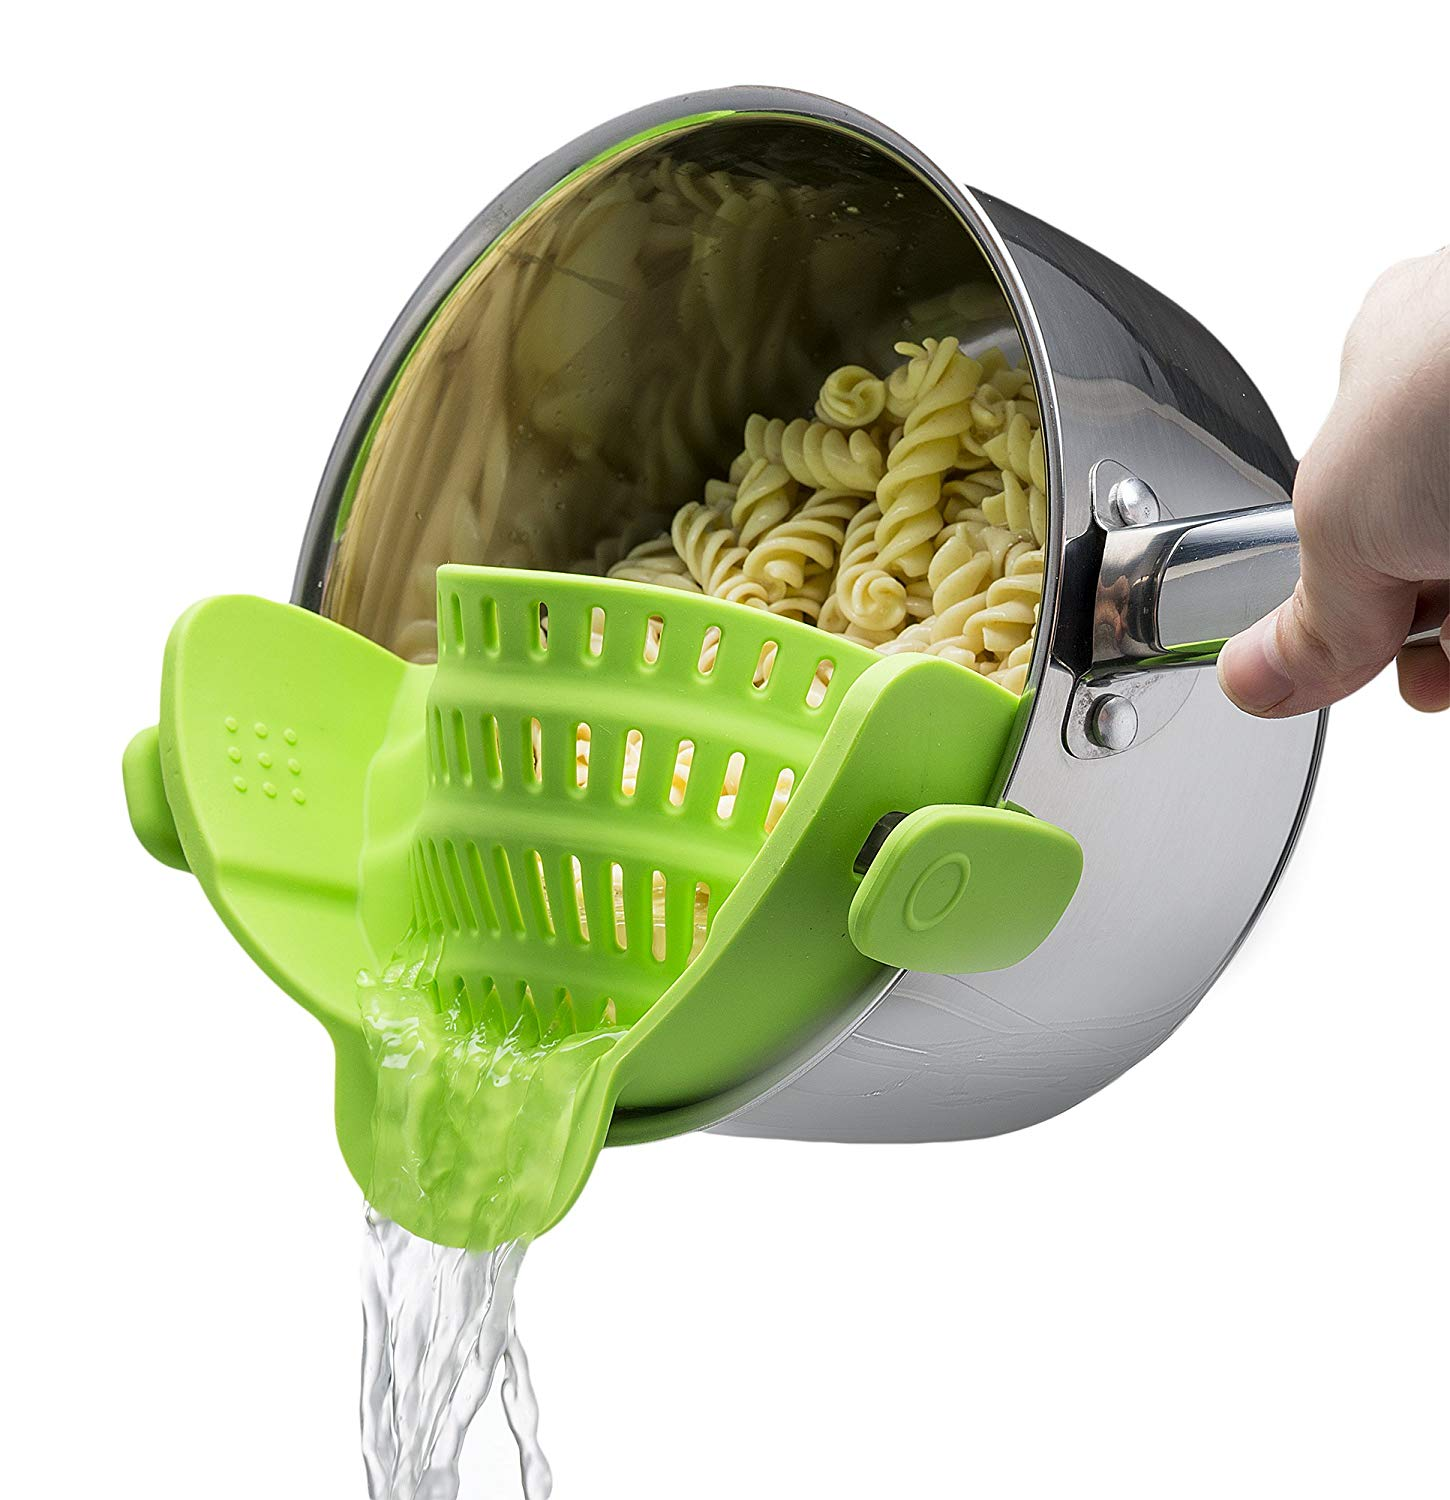 Silicone Clip-on Strainer Colander, Coolmade Hands-Free Heat Resistant Drainer Filter for Pot Bowl Pan Pasta Spaghetti Vegetable, Fits all Pots and Bowls - Lime Green